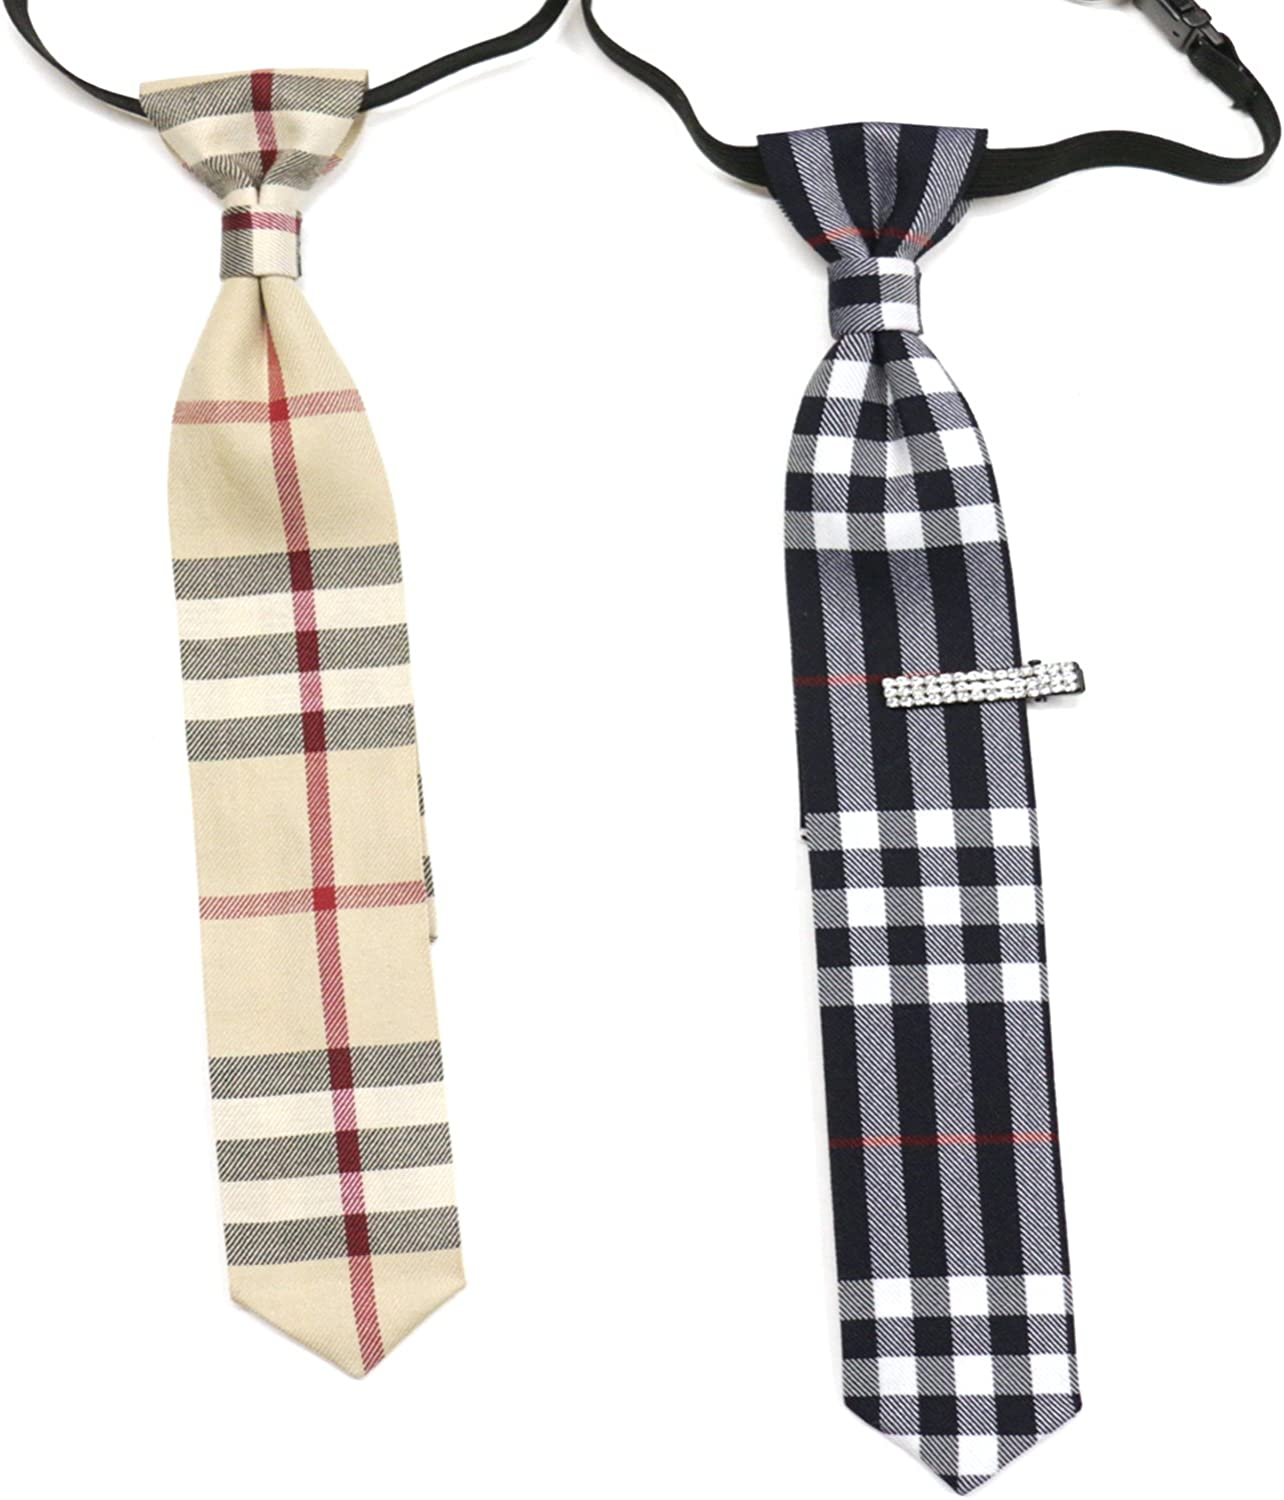 Bow Ties for Kids Girliber Beige Checkered Bow tie and Tie Slim Style Necktie,